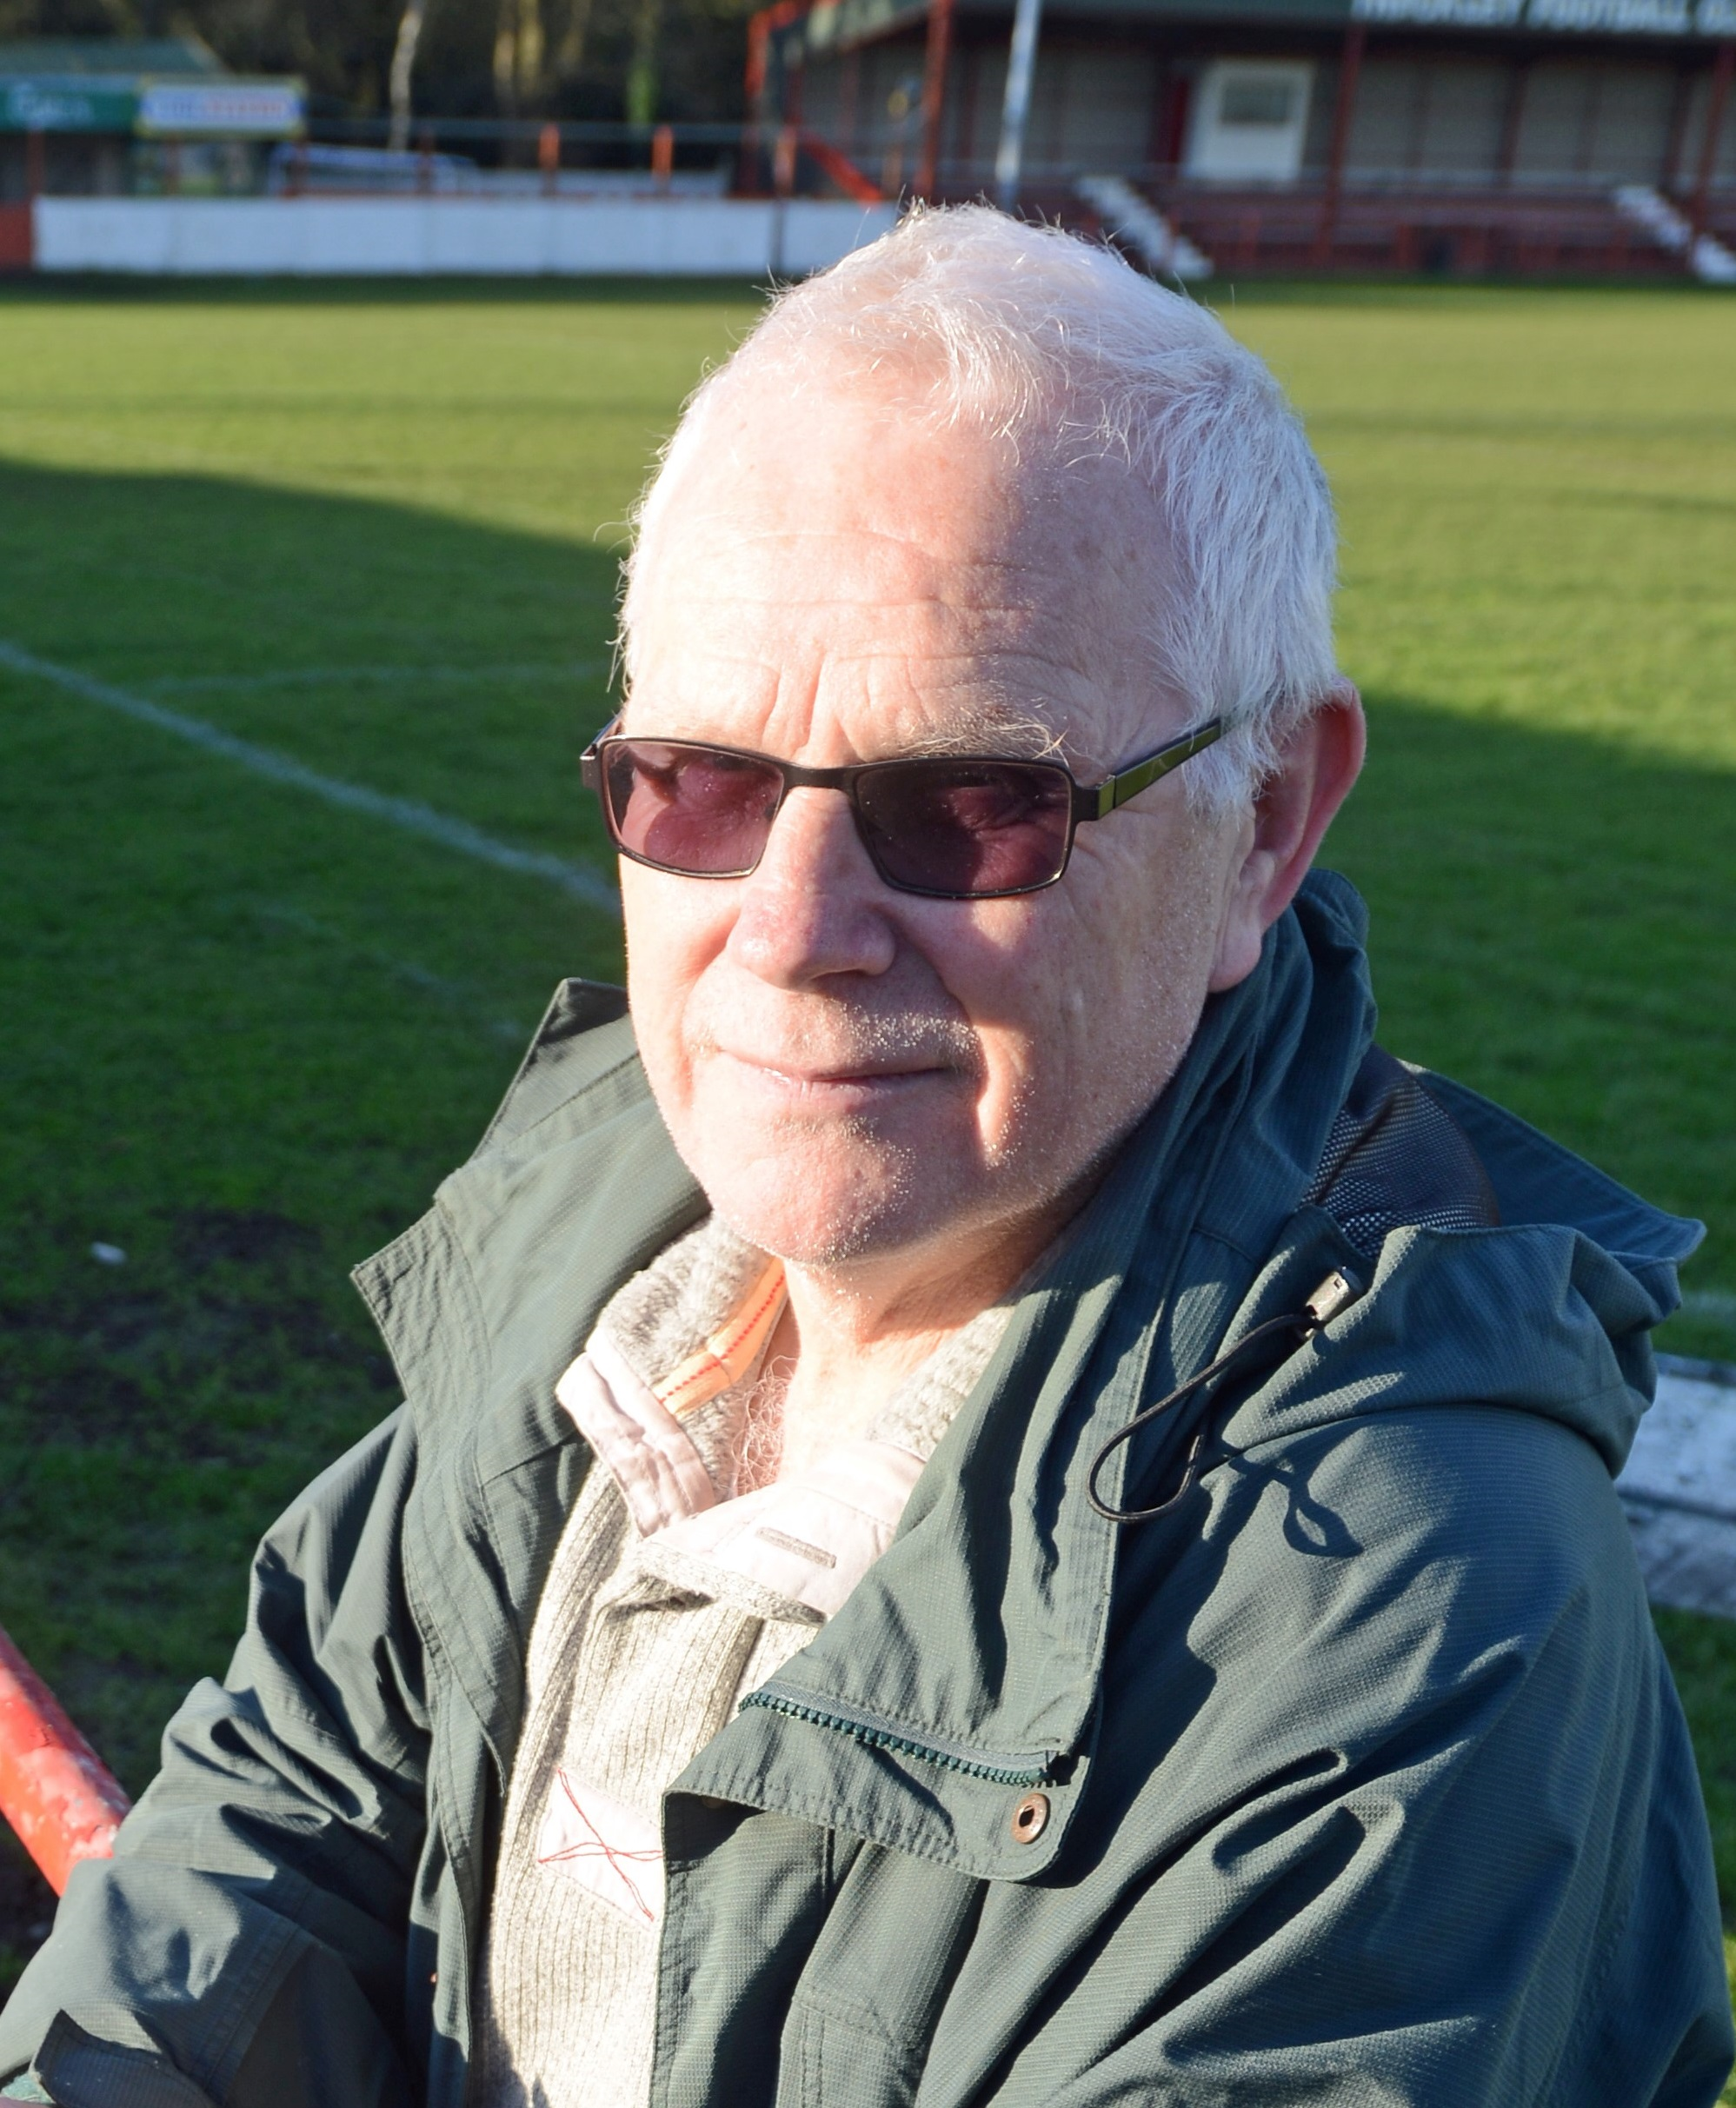 Thackley secretary Mick Lodge says that they will have to think hard before deciding to claim any compensation from Bottesford Town